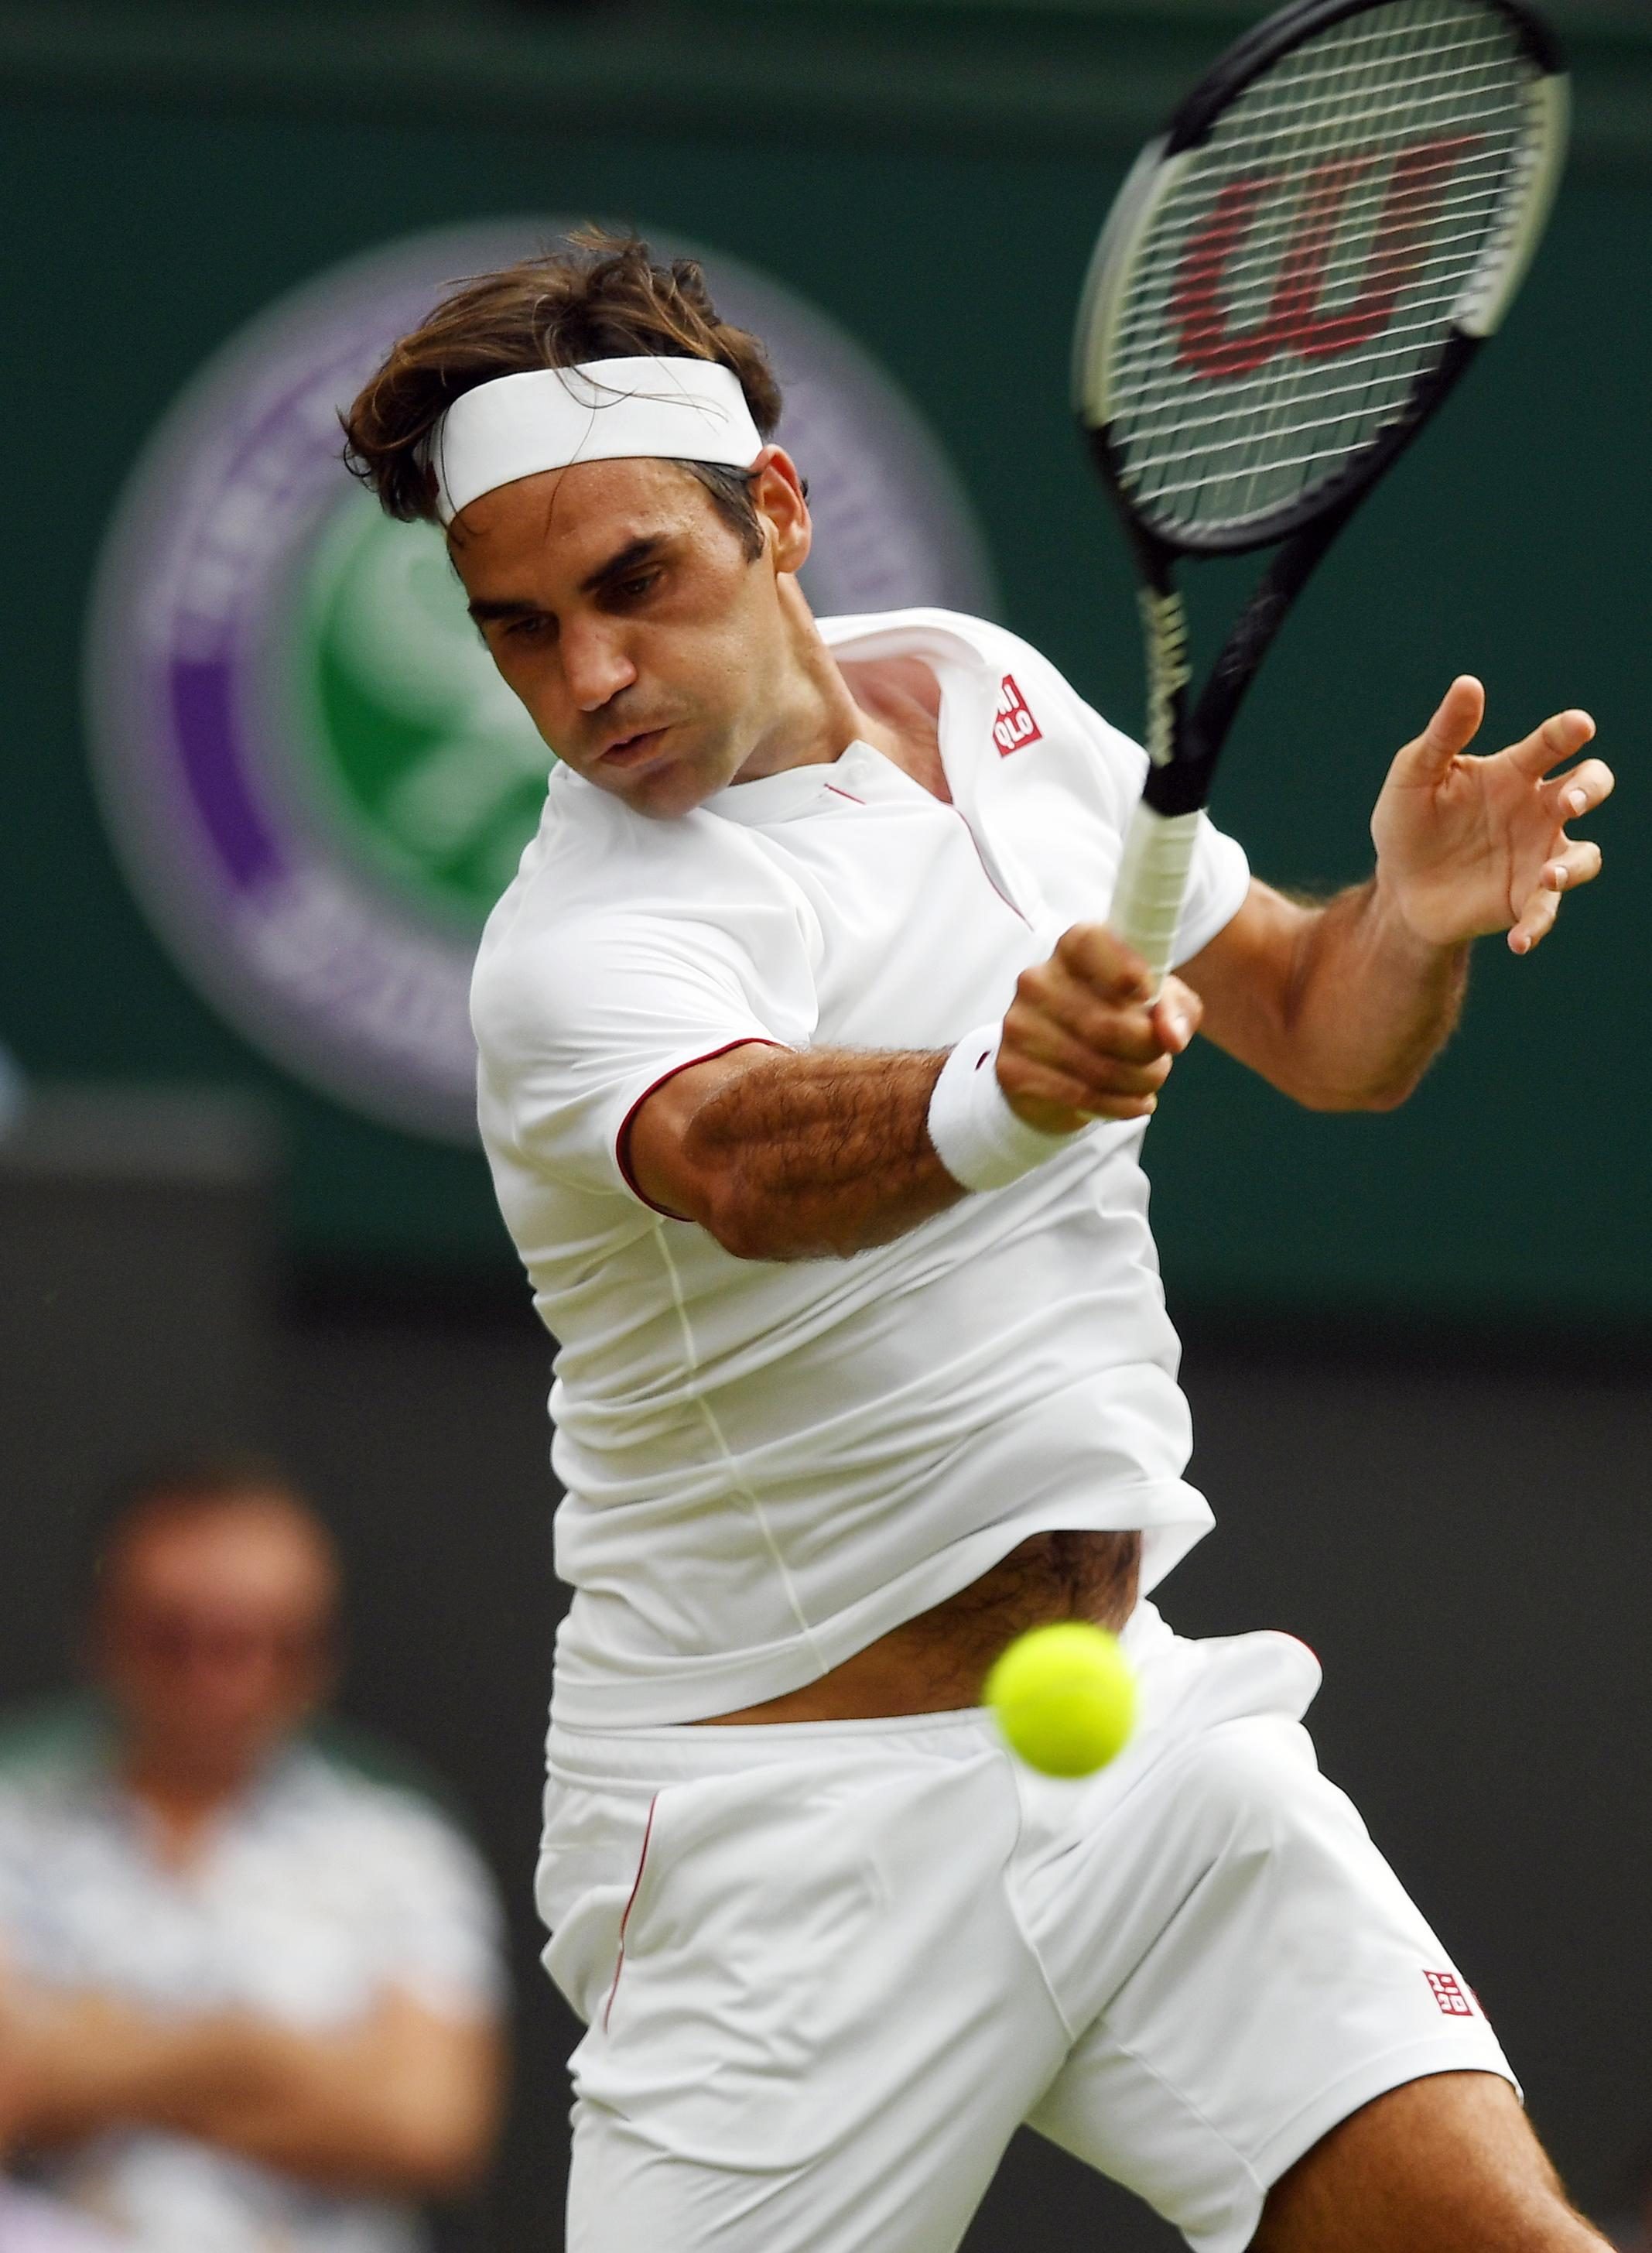 Roger Federer stormed to a straight-sets win over Adrian Mannarino